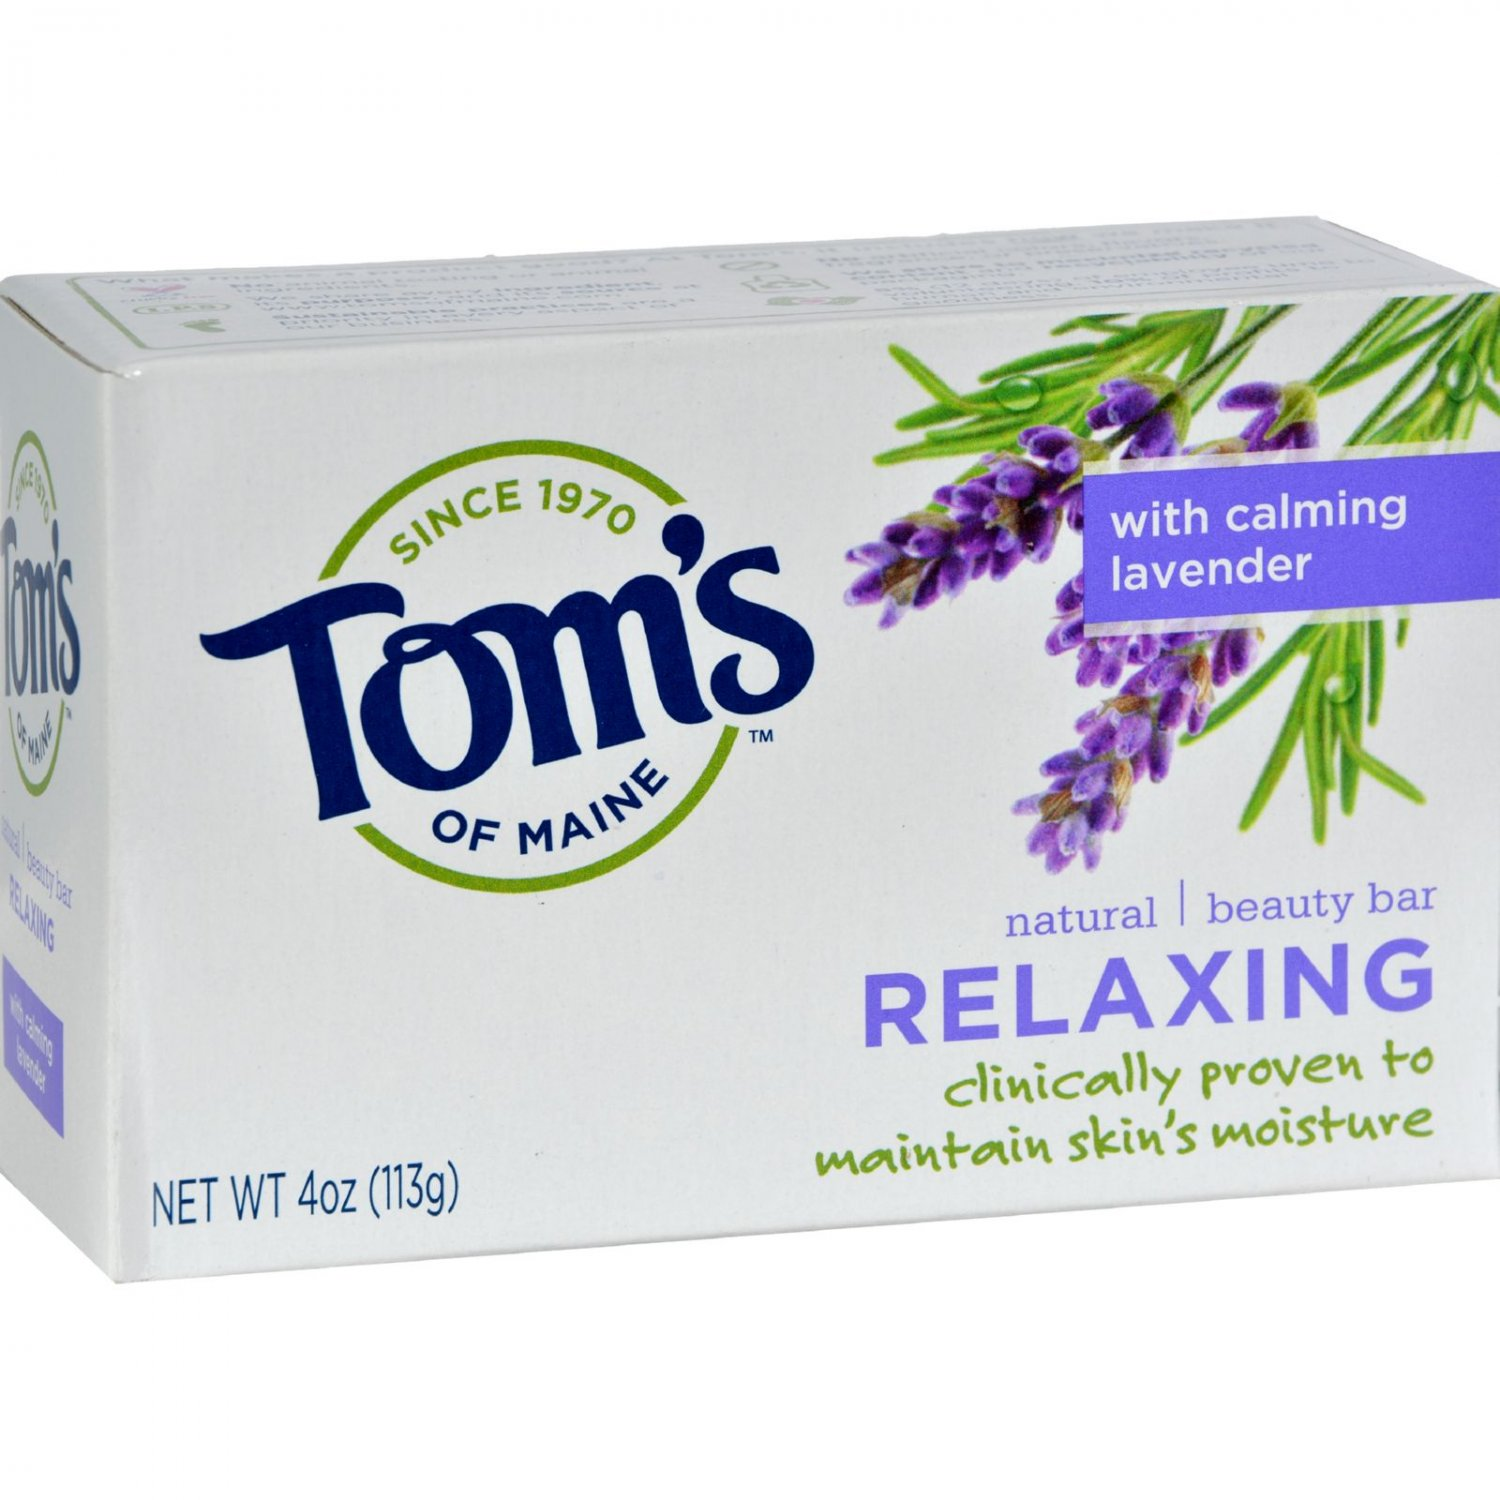 Tom's of Maine Natural Beauty Bar Relaxing with Calming Lavender - 4 oz - Case of 6